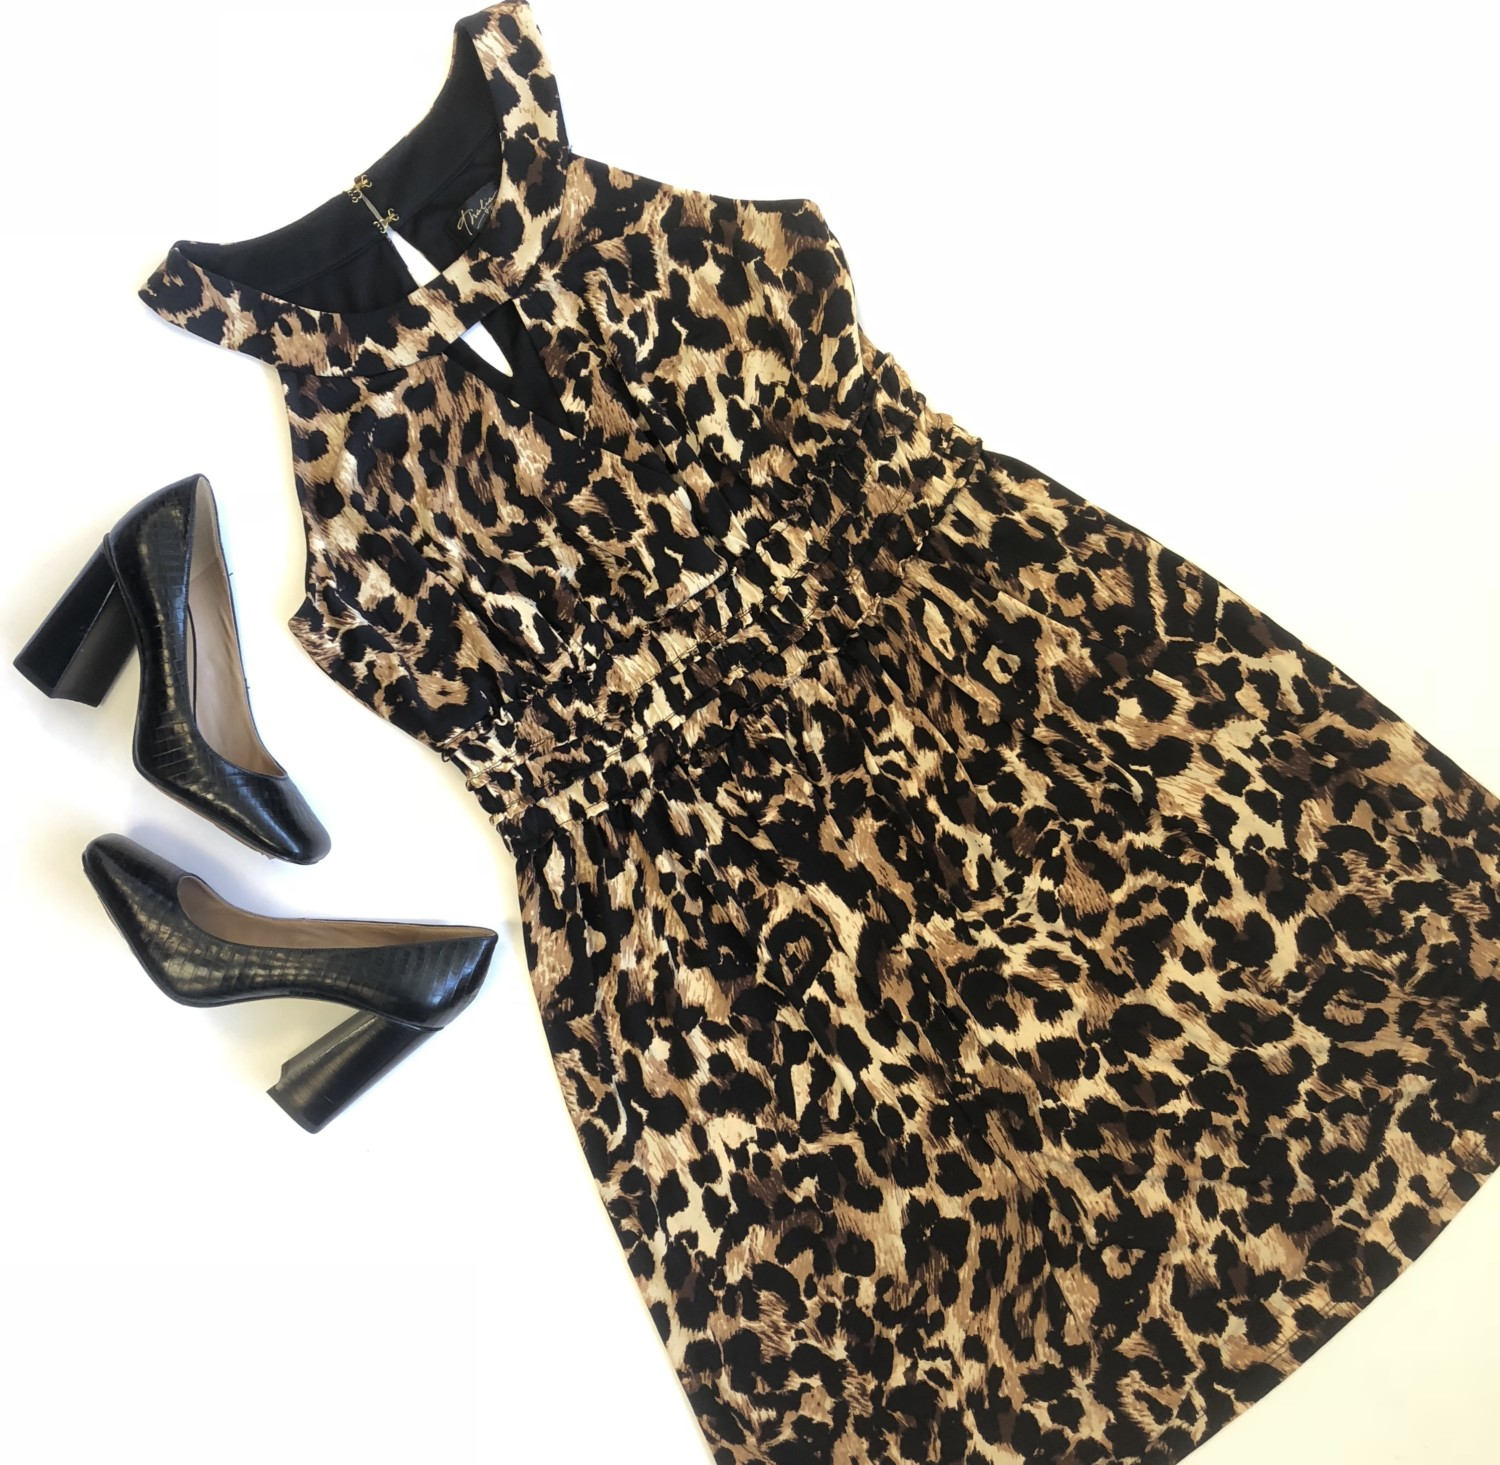 Thalia Sodi Dress – Original Retail: $69.50, CWS: $20, Liquidation: $10